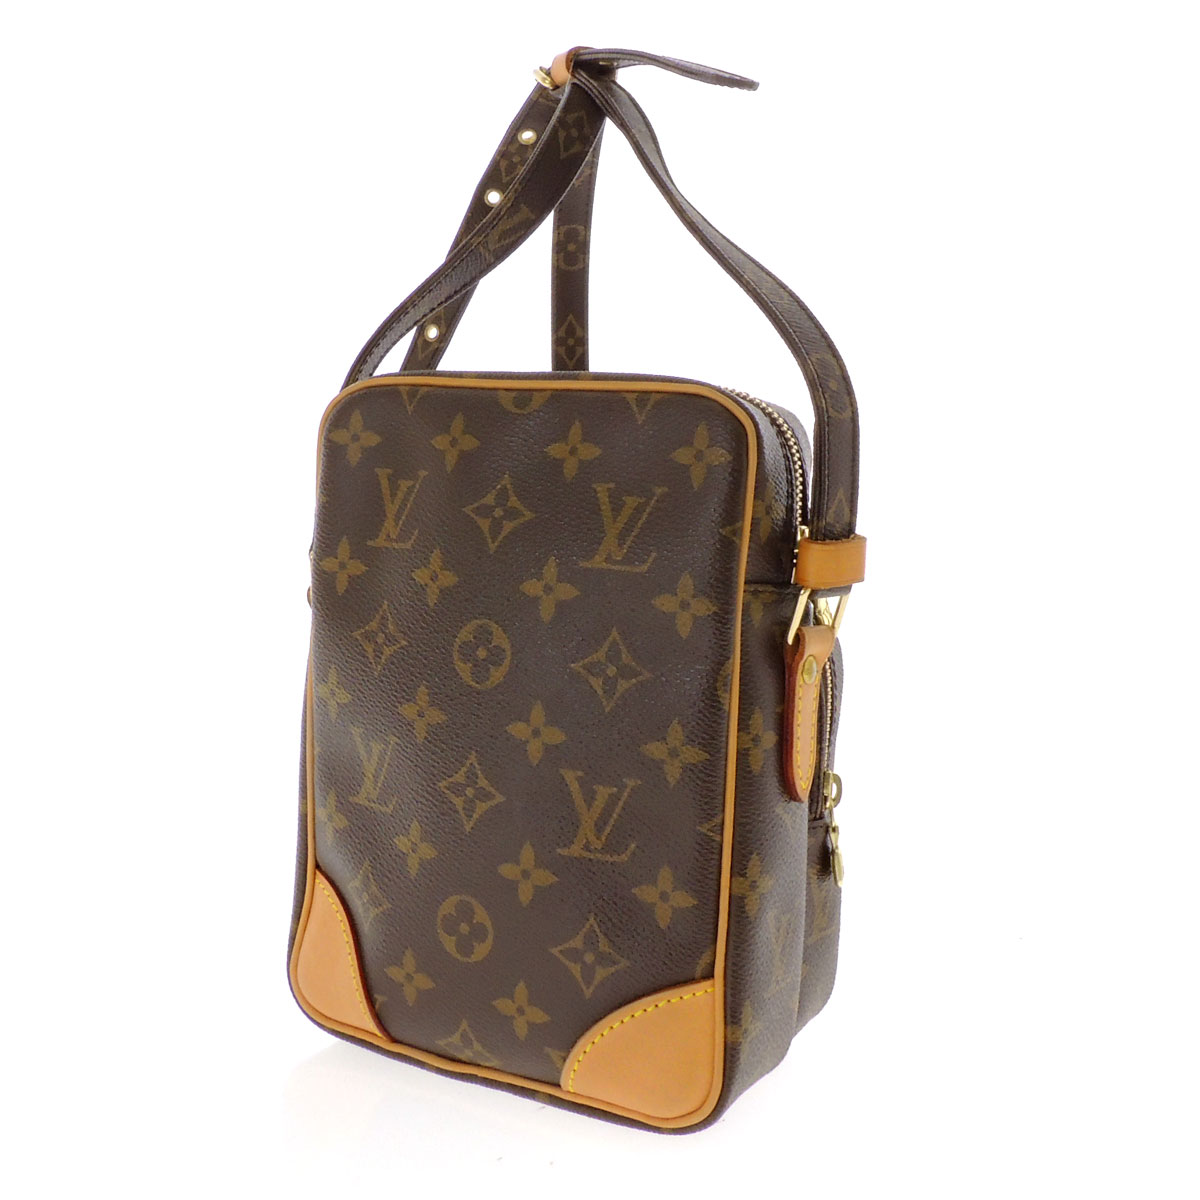 LOUIS VUITTON Amazon M45236 shoulder bag Monogram Canvas ladies